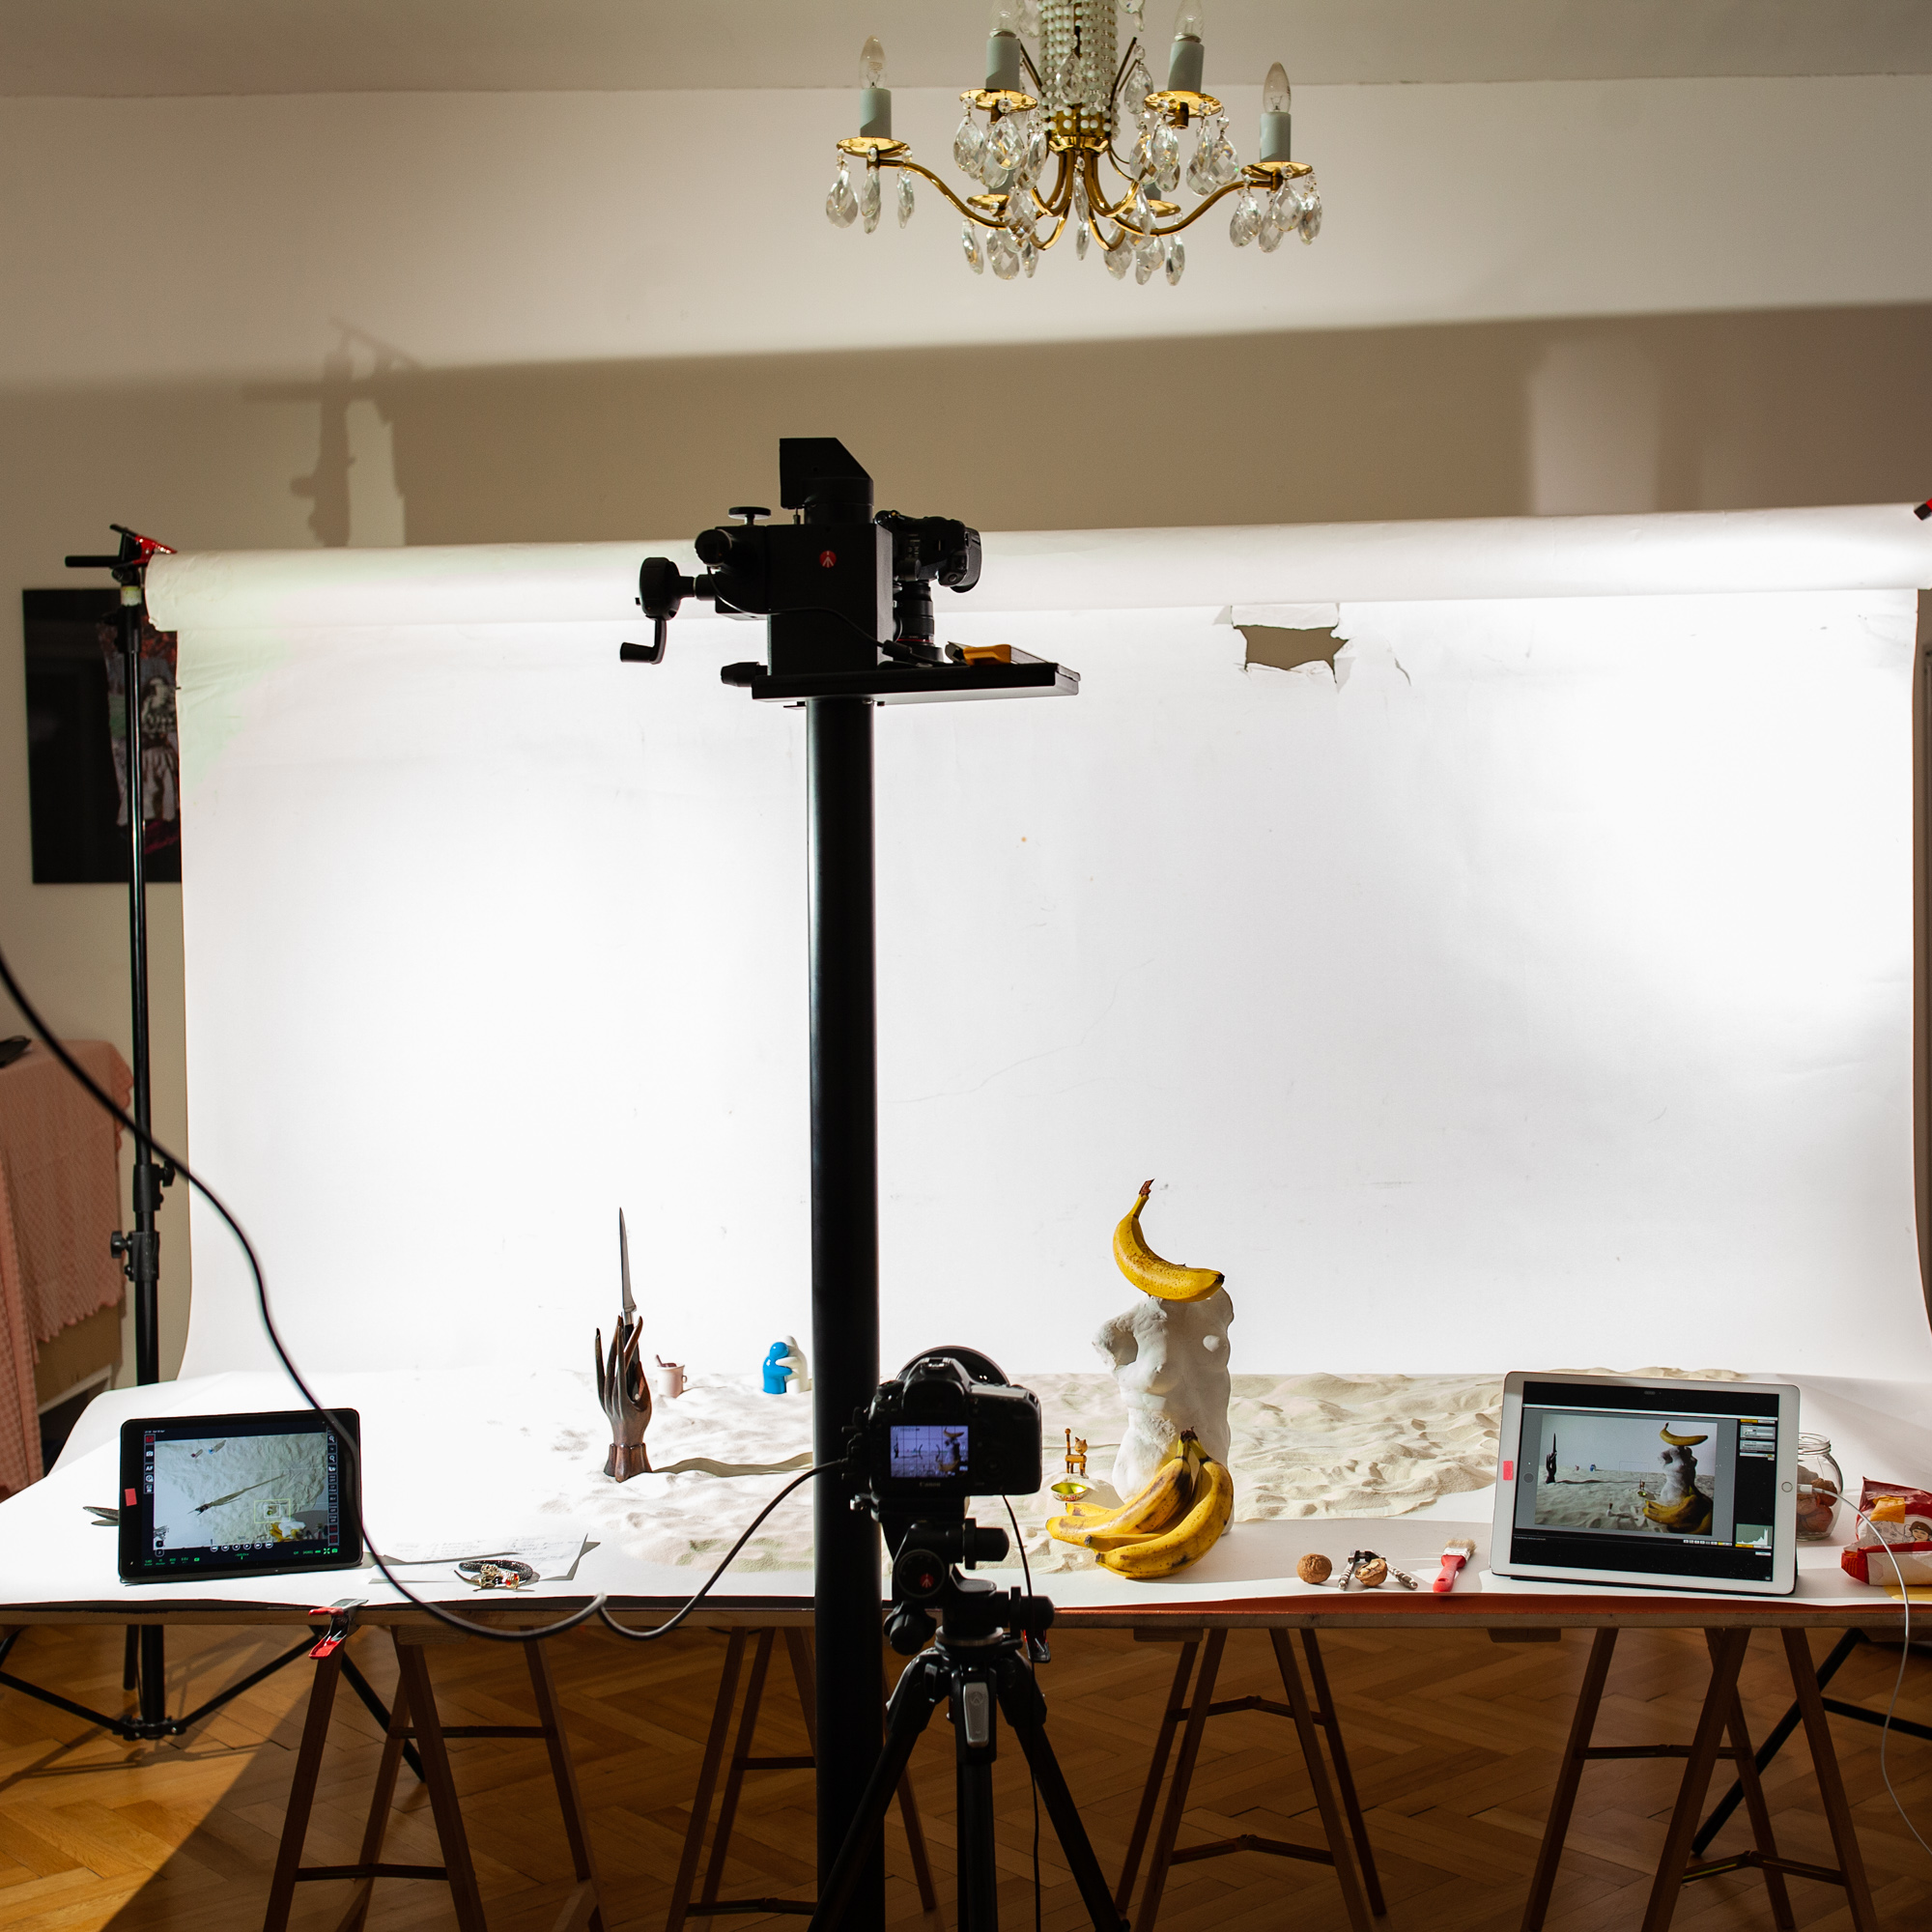 Behind the scenes of foodlydoodlydoo's vegan banana bread recipe. The photo shows the preparation of a scene. A statue of a naked women's torso decorated with bananas is seen as well as a wooden hand holding a knife. Cameras and lights are set around the scene.